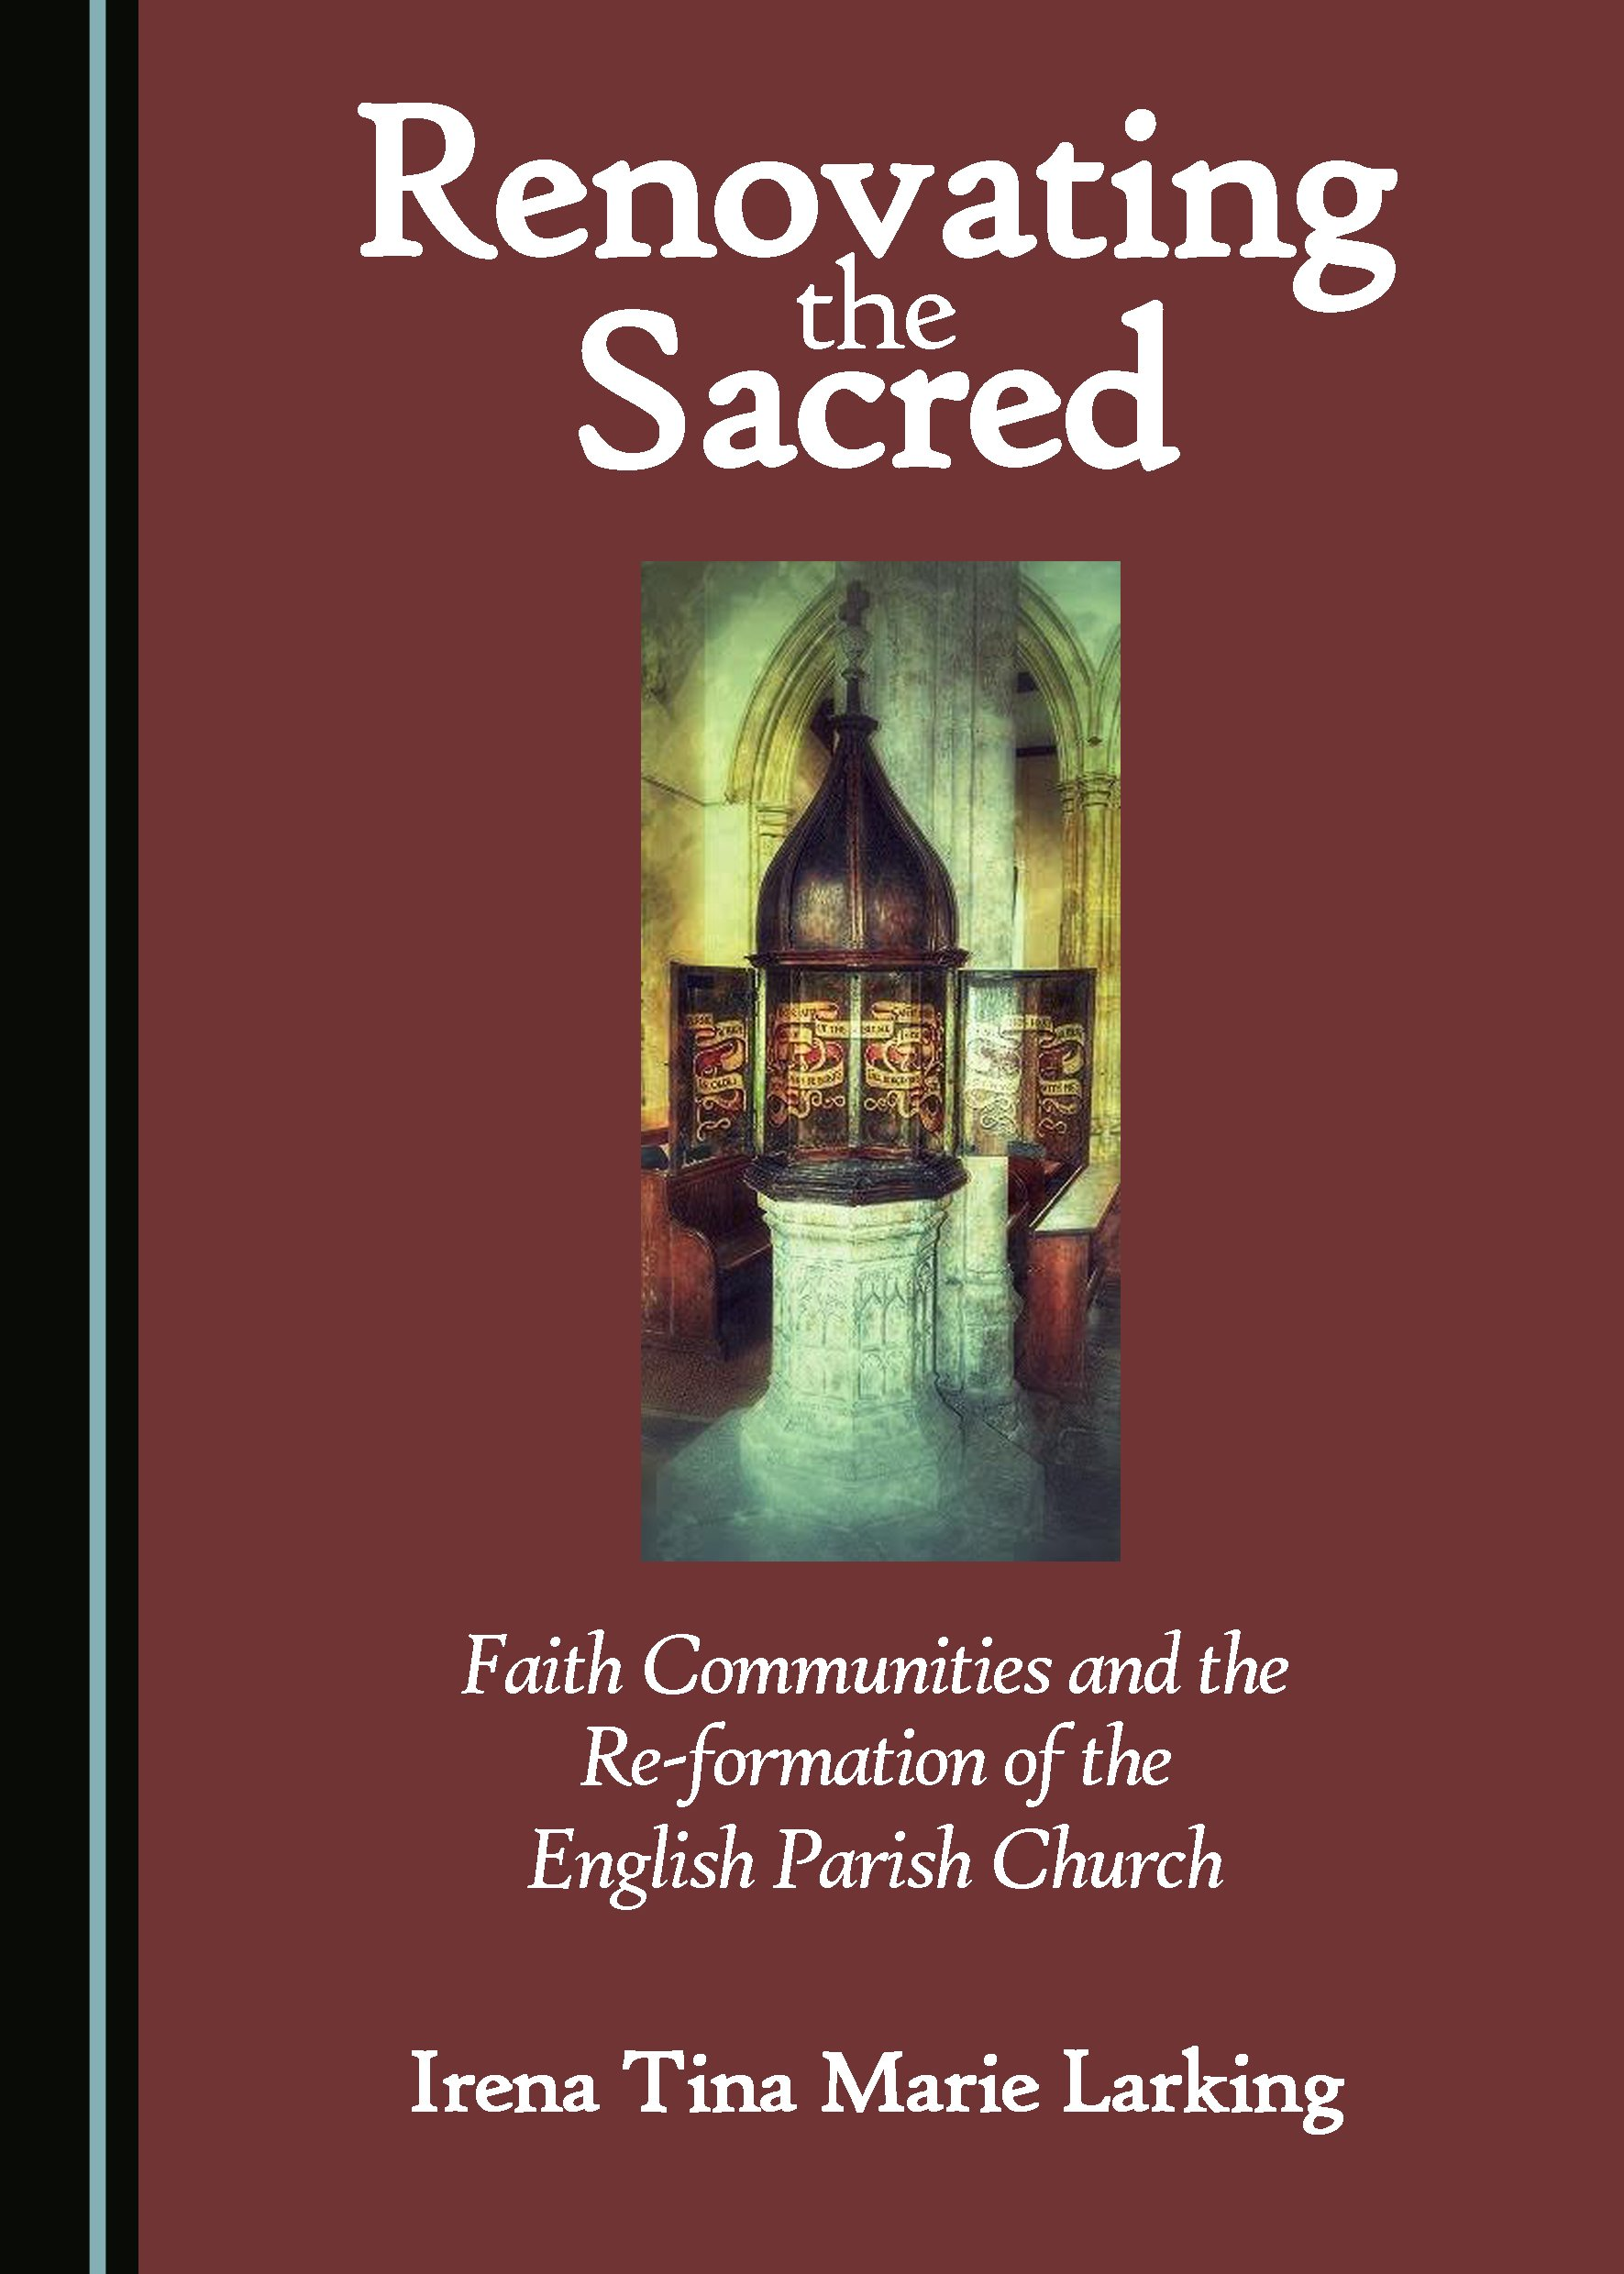 Renovating the Sacred: Faith Communities and the Re-formation of the English Parish Church